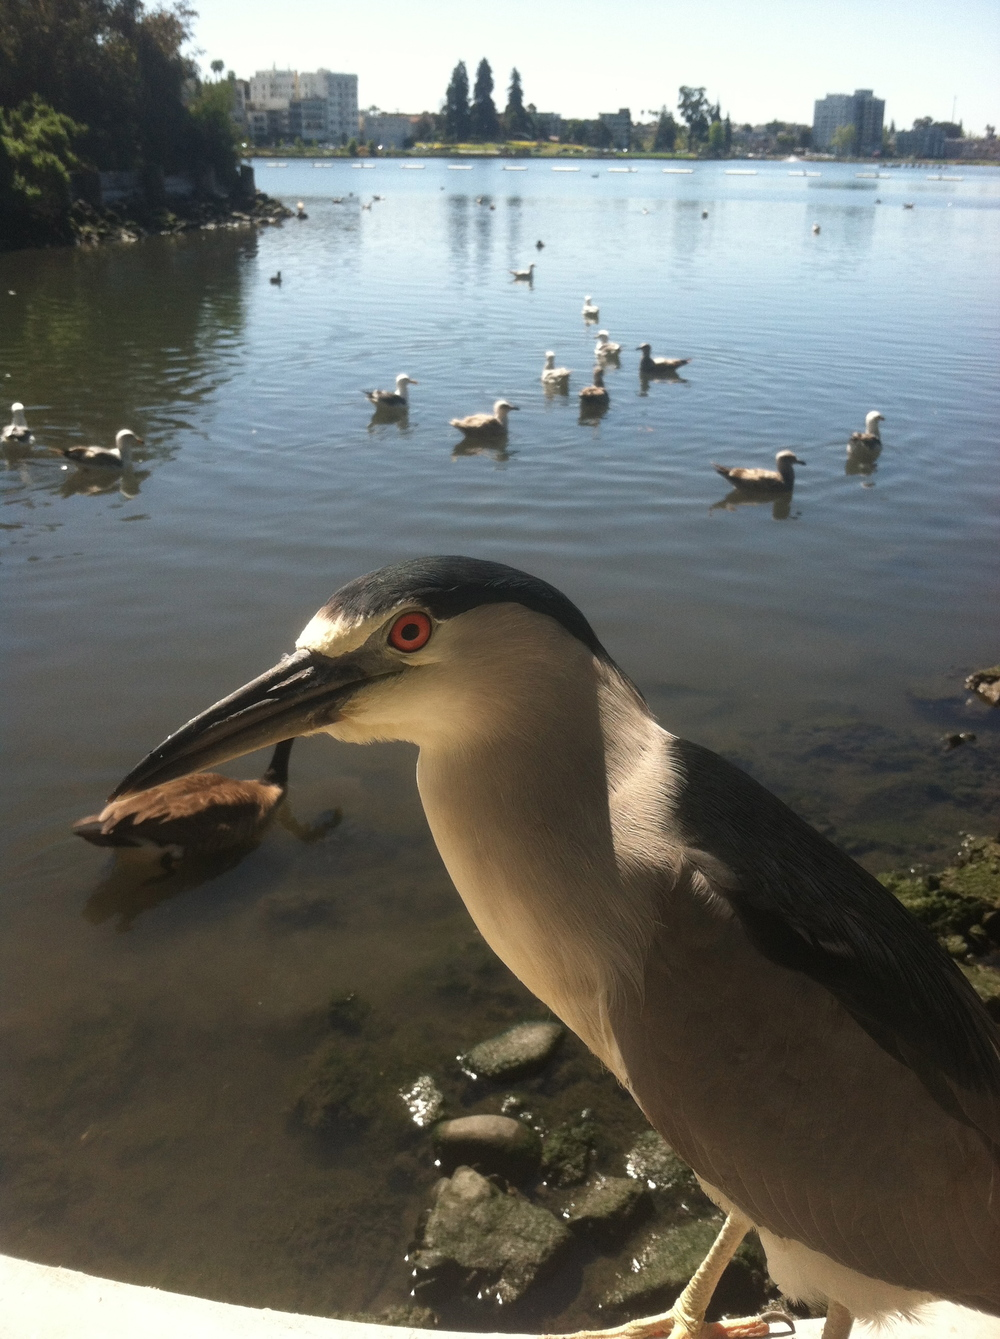 Night heron, Nycticorax nycticorax, at Lake Merritt, Photo: Lo Scheiner